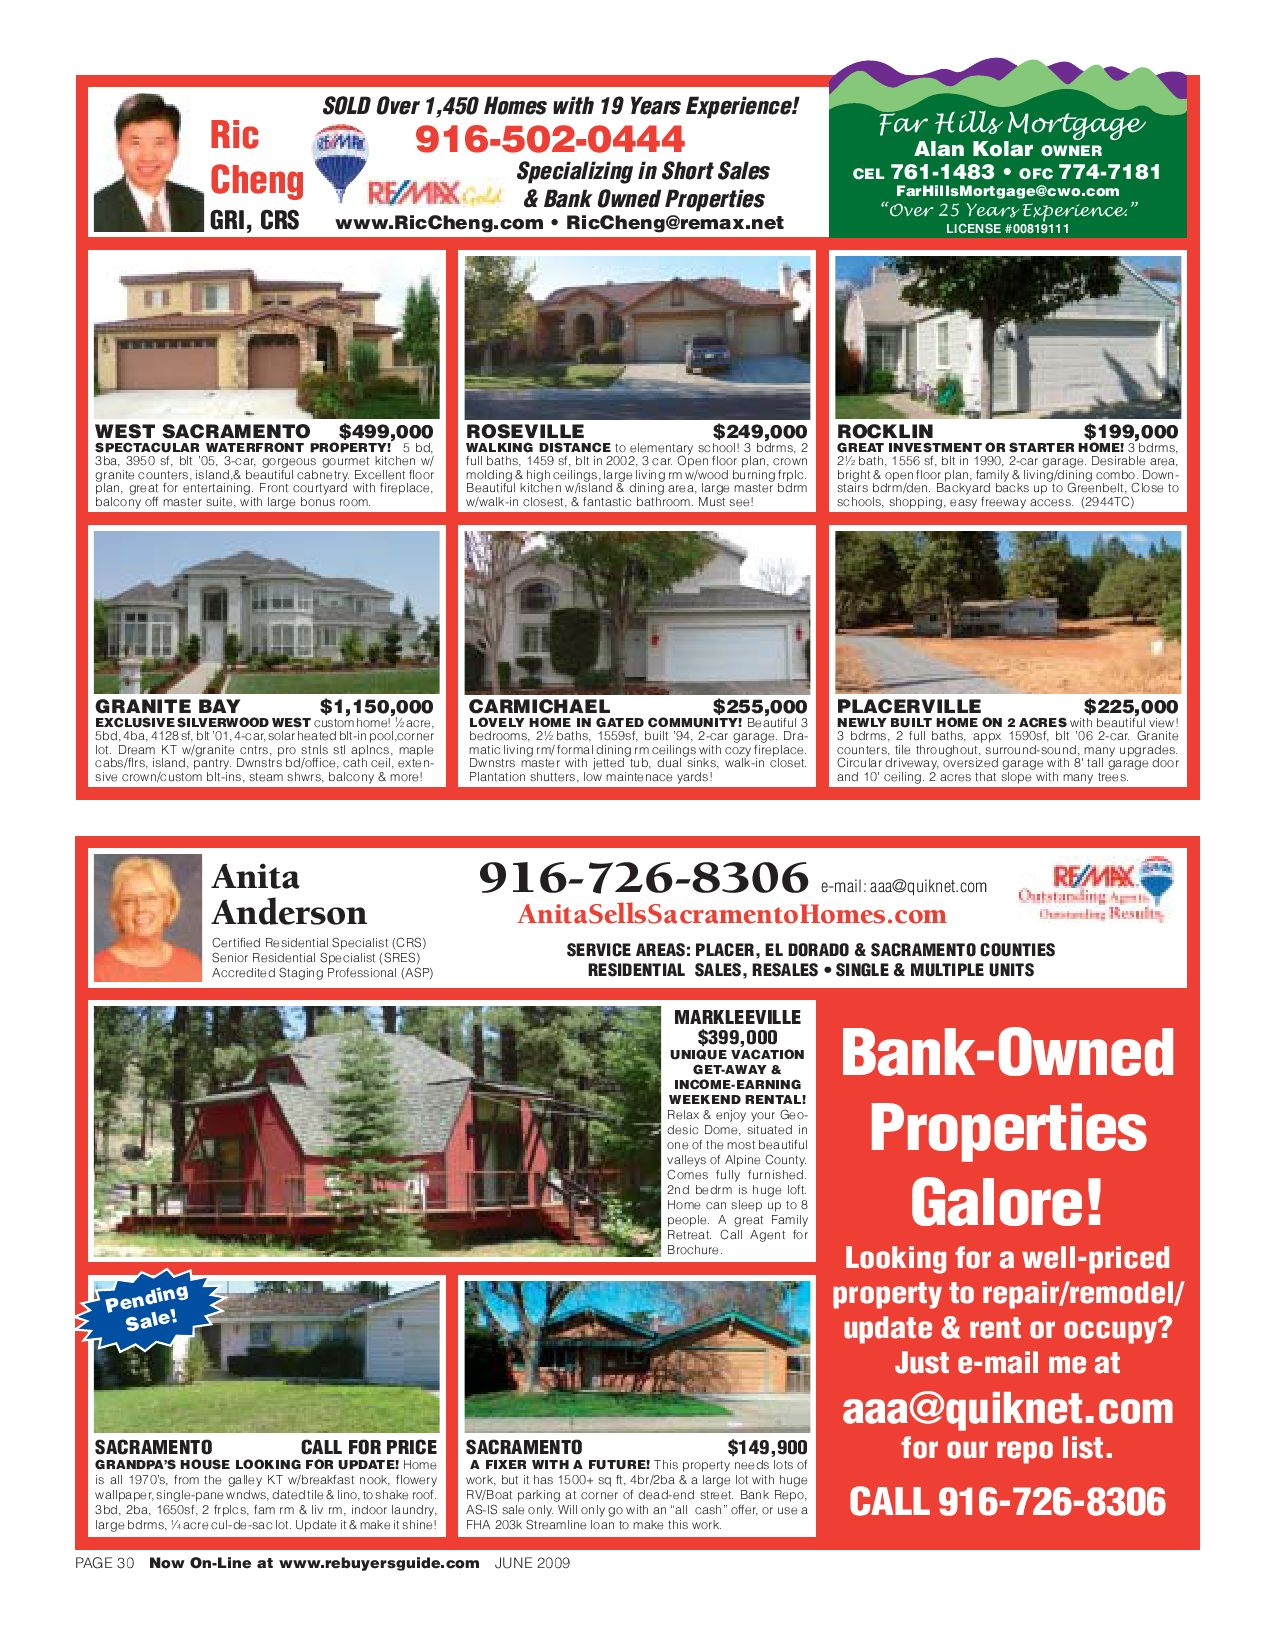 Real Estate Buyer's Guide by Real Estate Buyer's Guide - Issuu